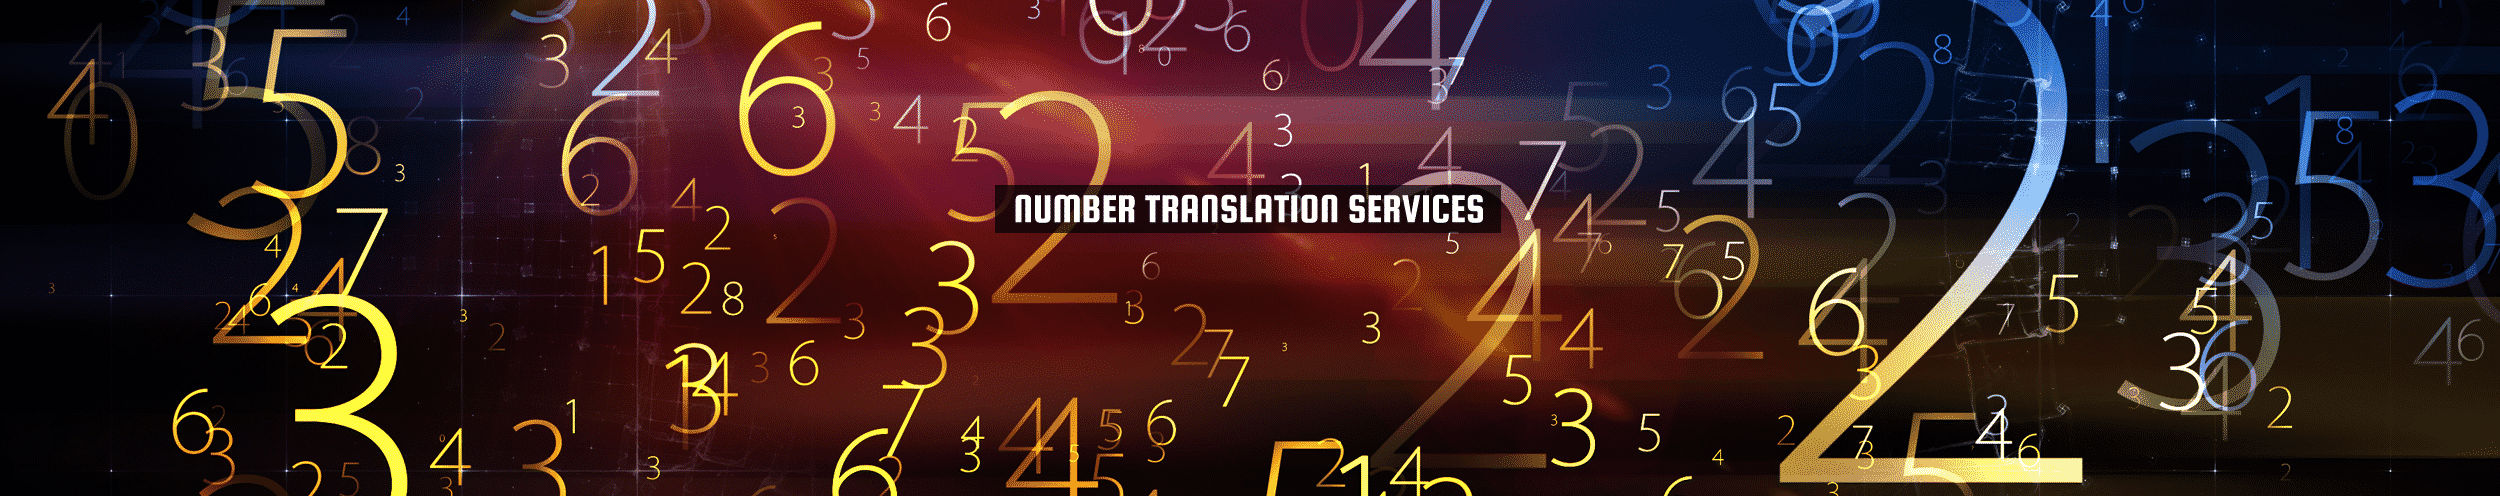 52Degrees Number Translation Services - feature image | series of gold and blue numbers on a black background | Telecoms Solutions, Norwich